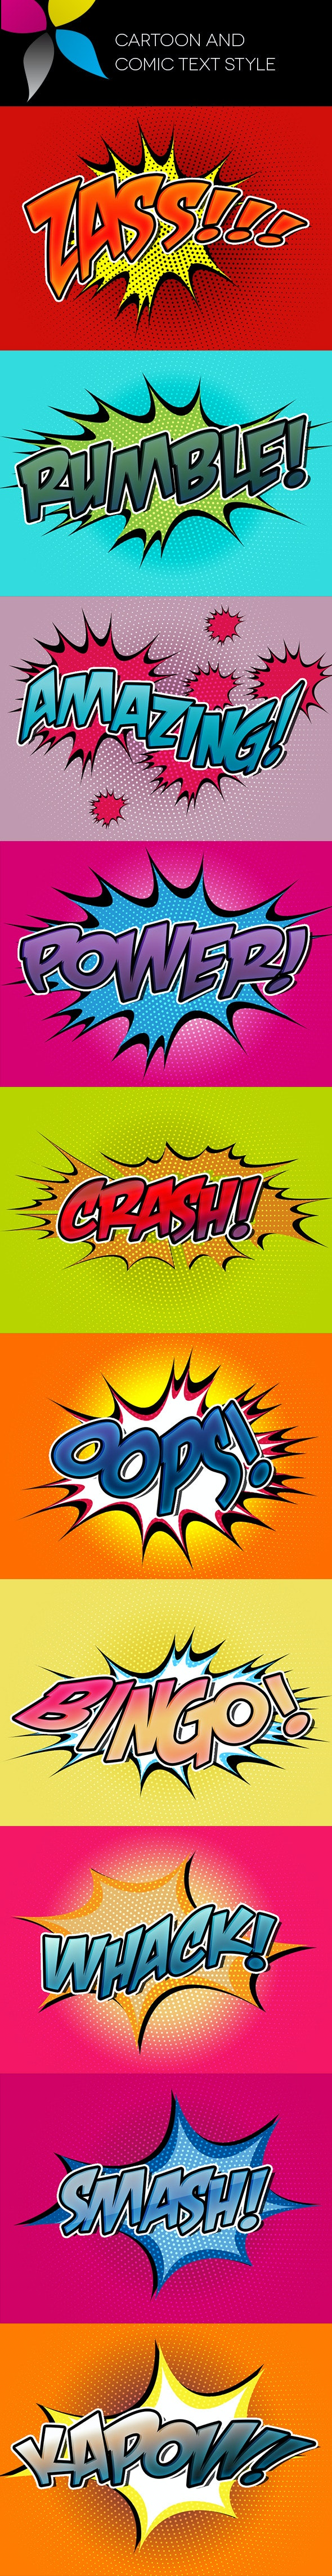 Cartoon and Comic Text Style - Text Effects Styles